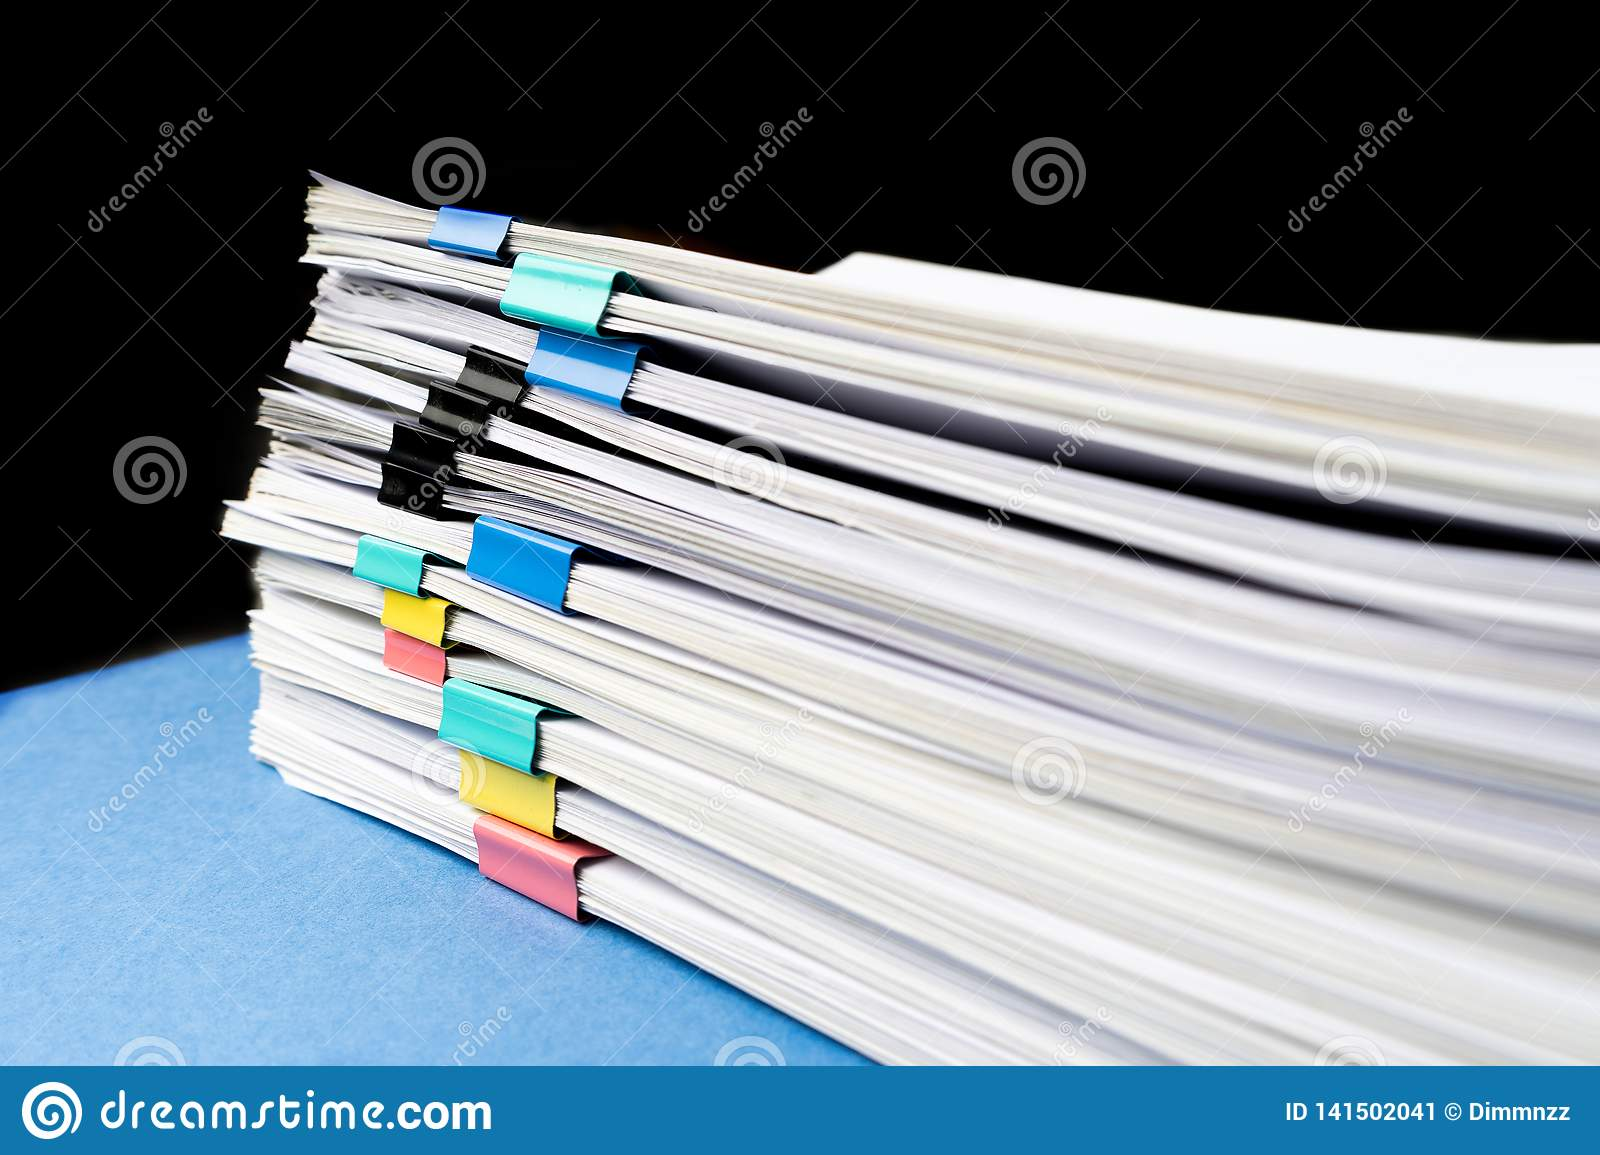 Mock up, stack of papers documents in archives files with paper clips on desk at offices, business concept. Copy space